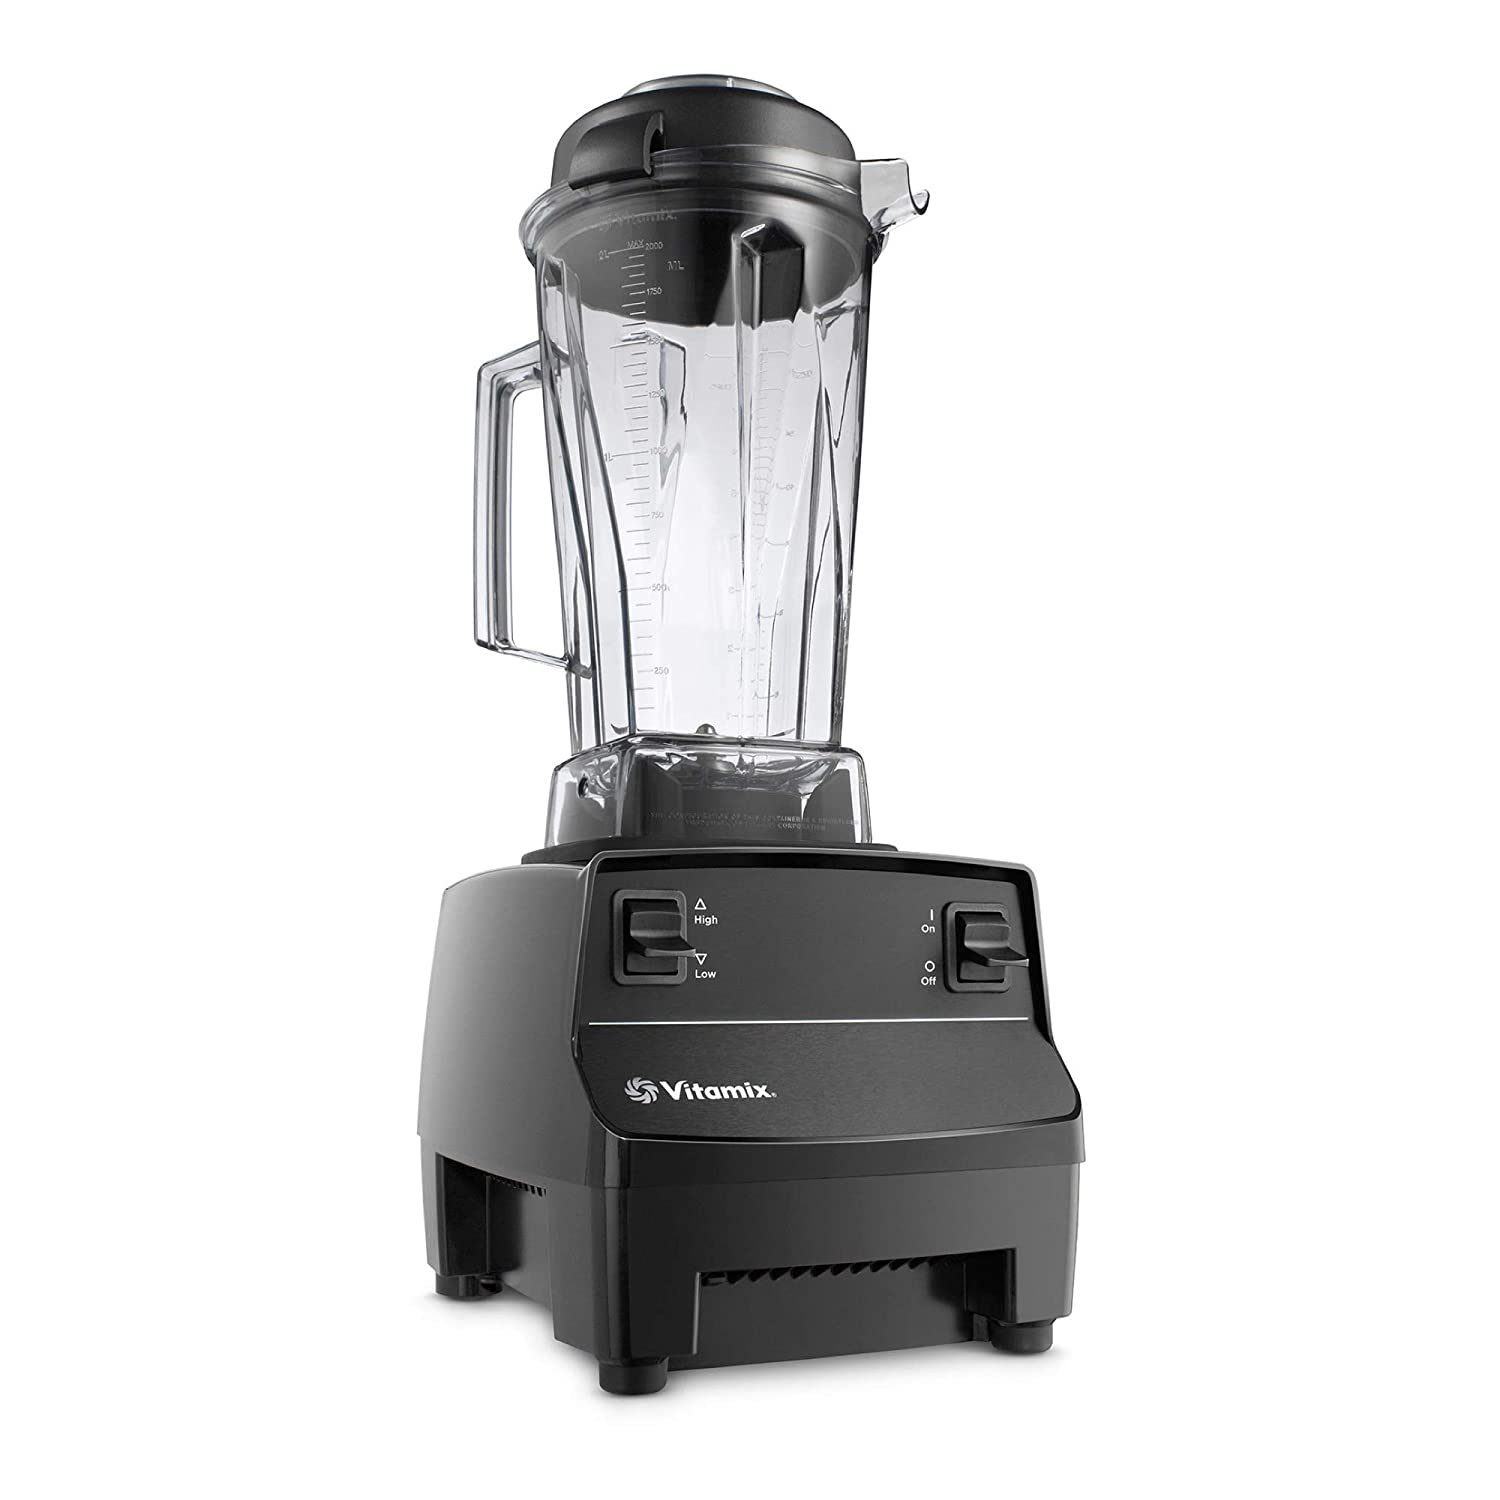 Vitamix Two Speed Blender, Professional-Grade, 64oz. Container, Black (Certified Refurbished)